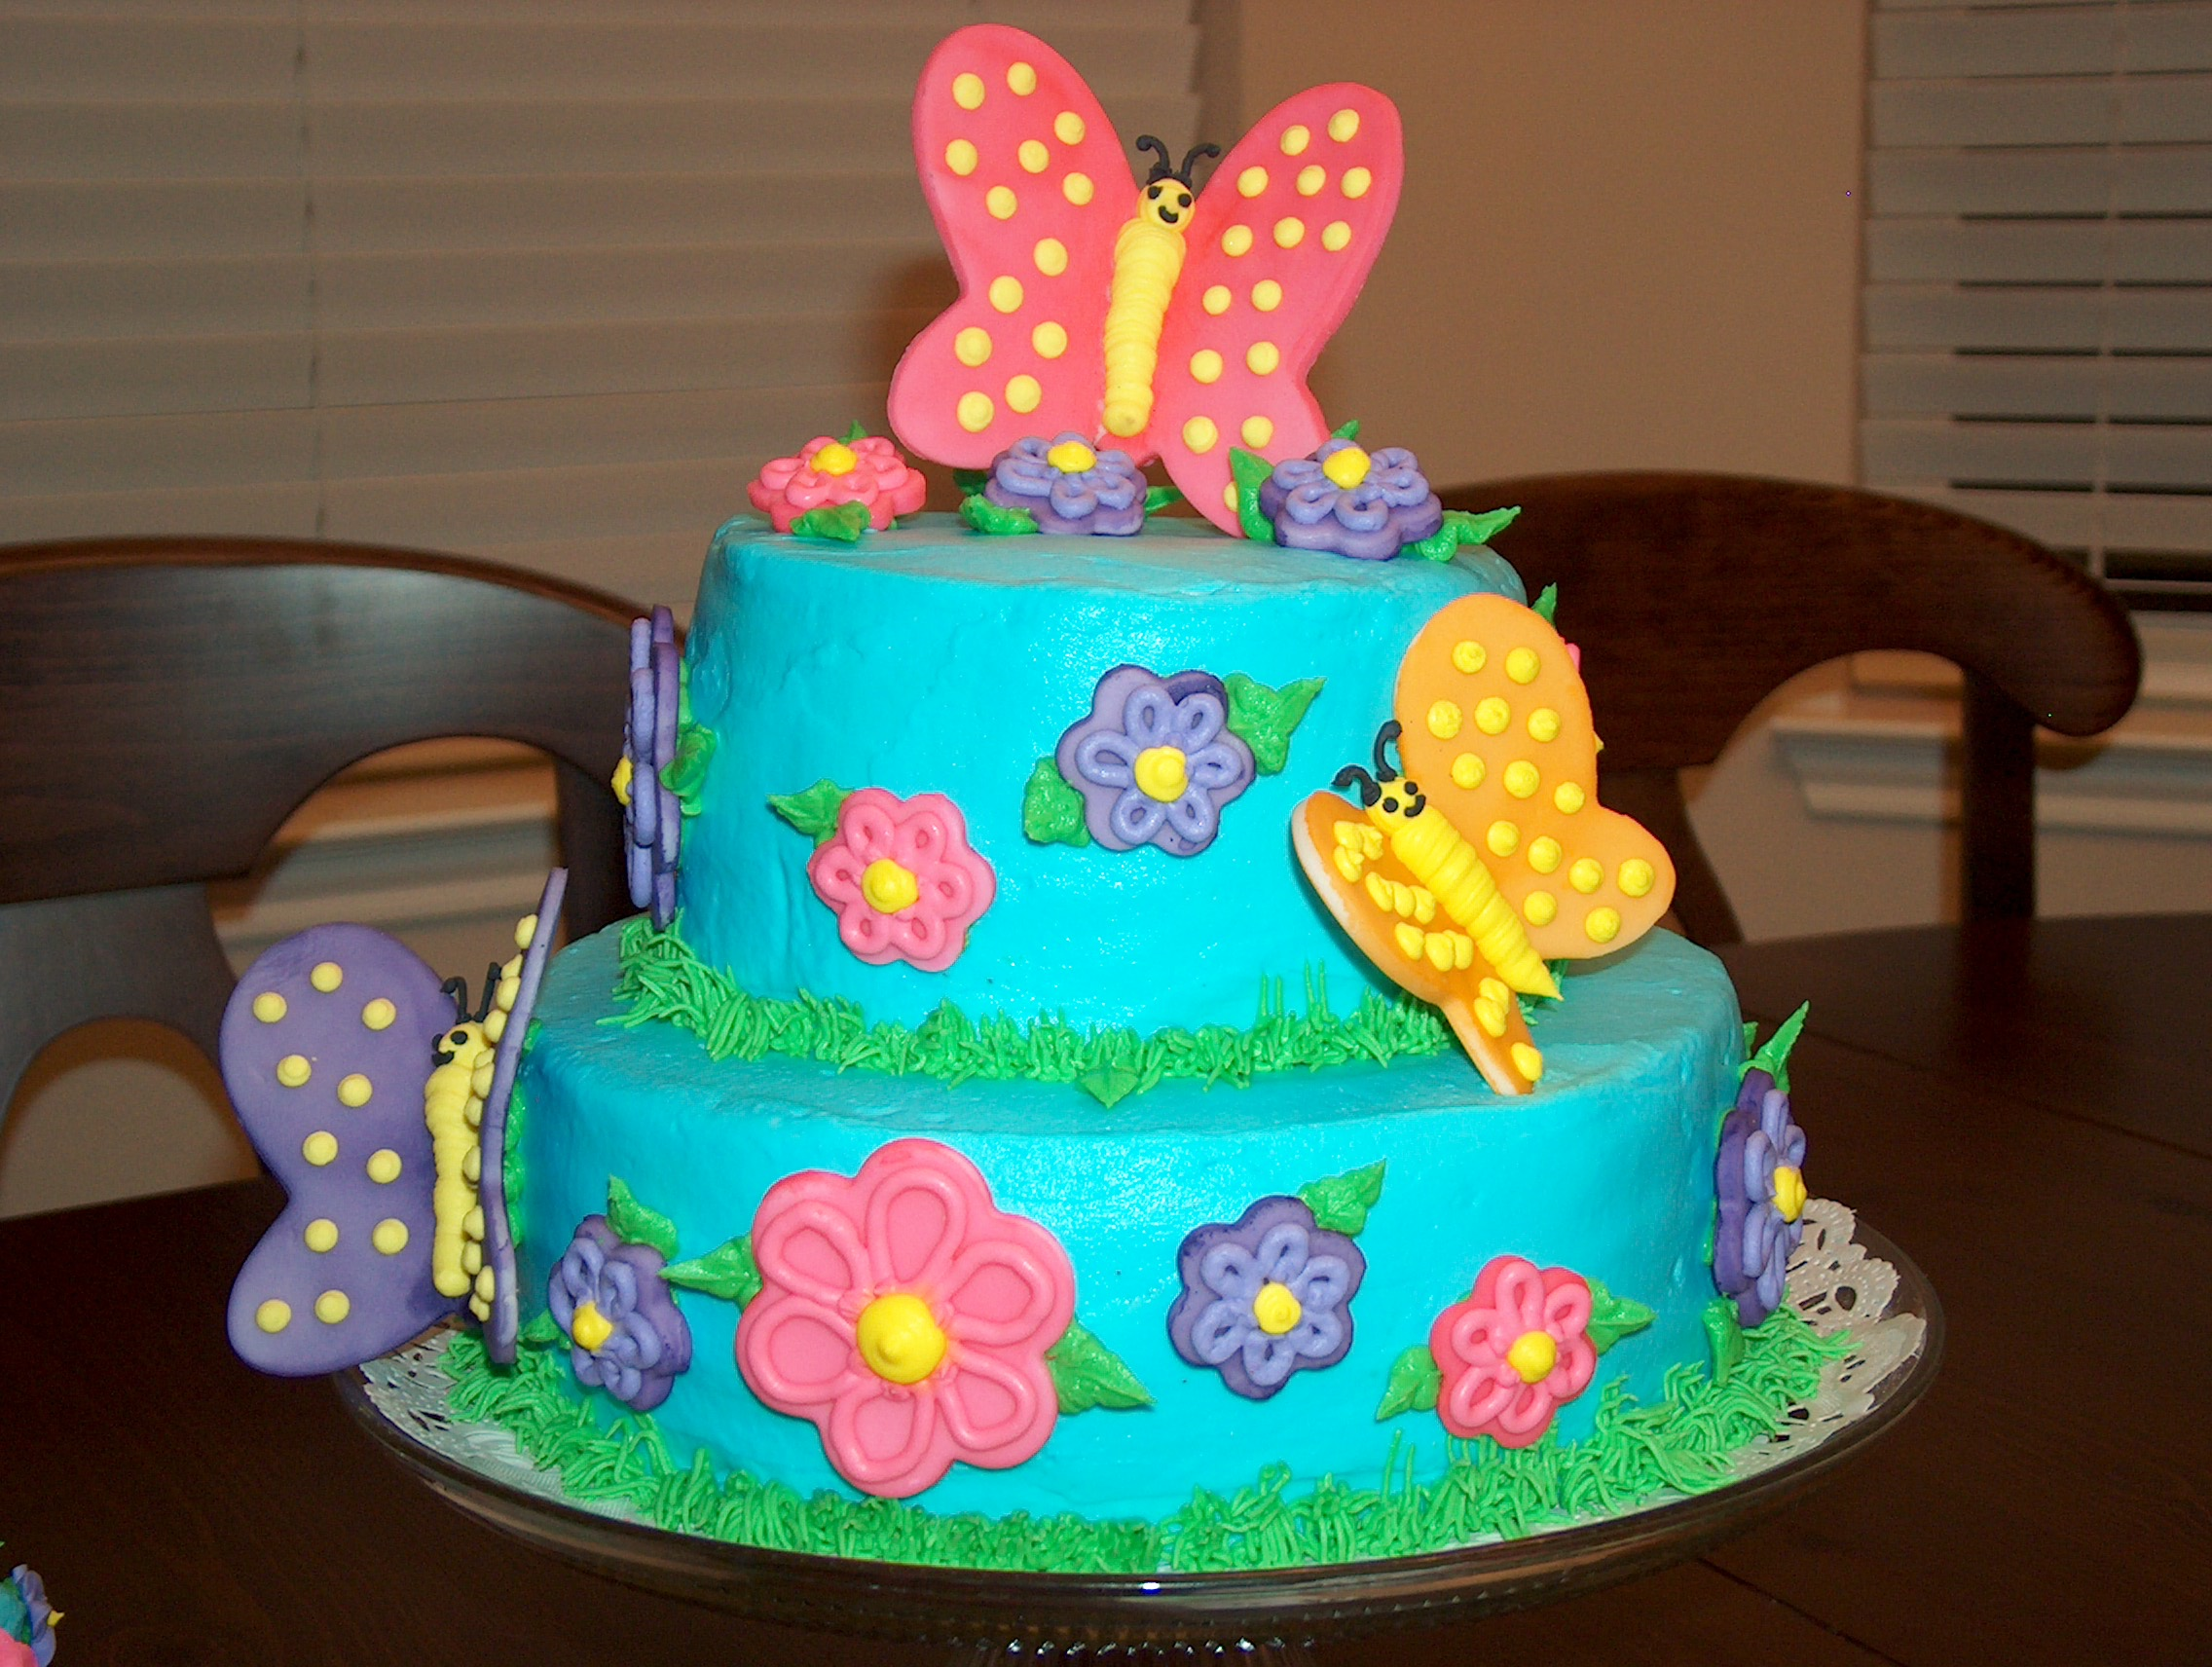 Magnificent Butterflies Birthday Cake Decorating Ideas 2272 x 1712 · 889 kB · jpeg